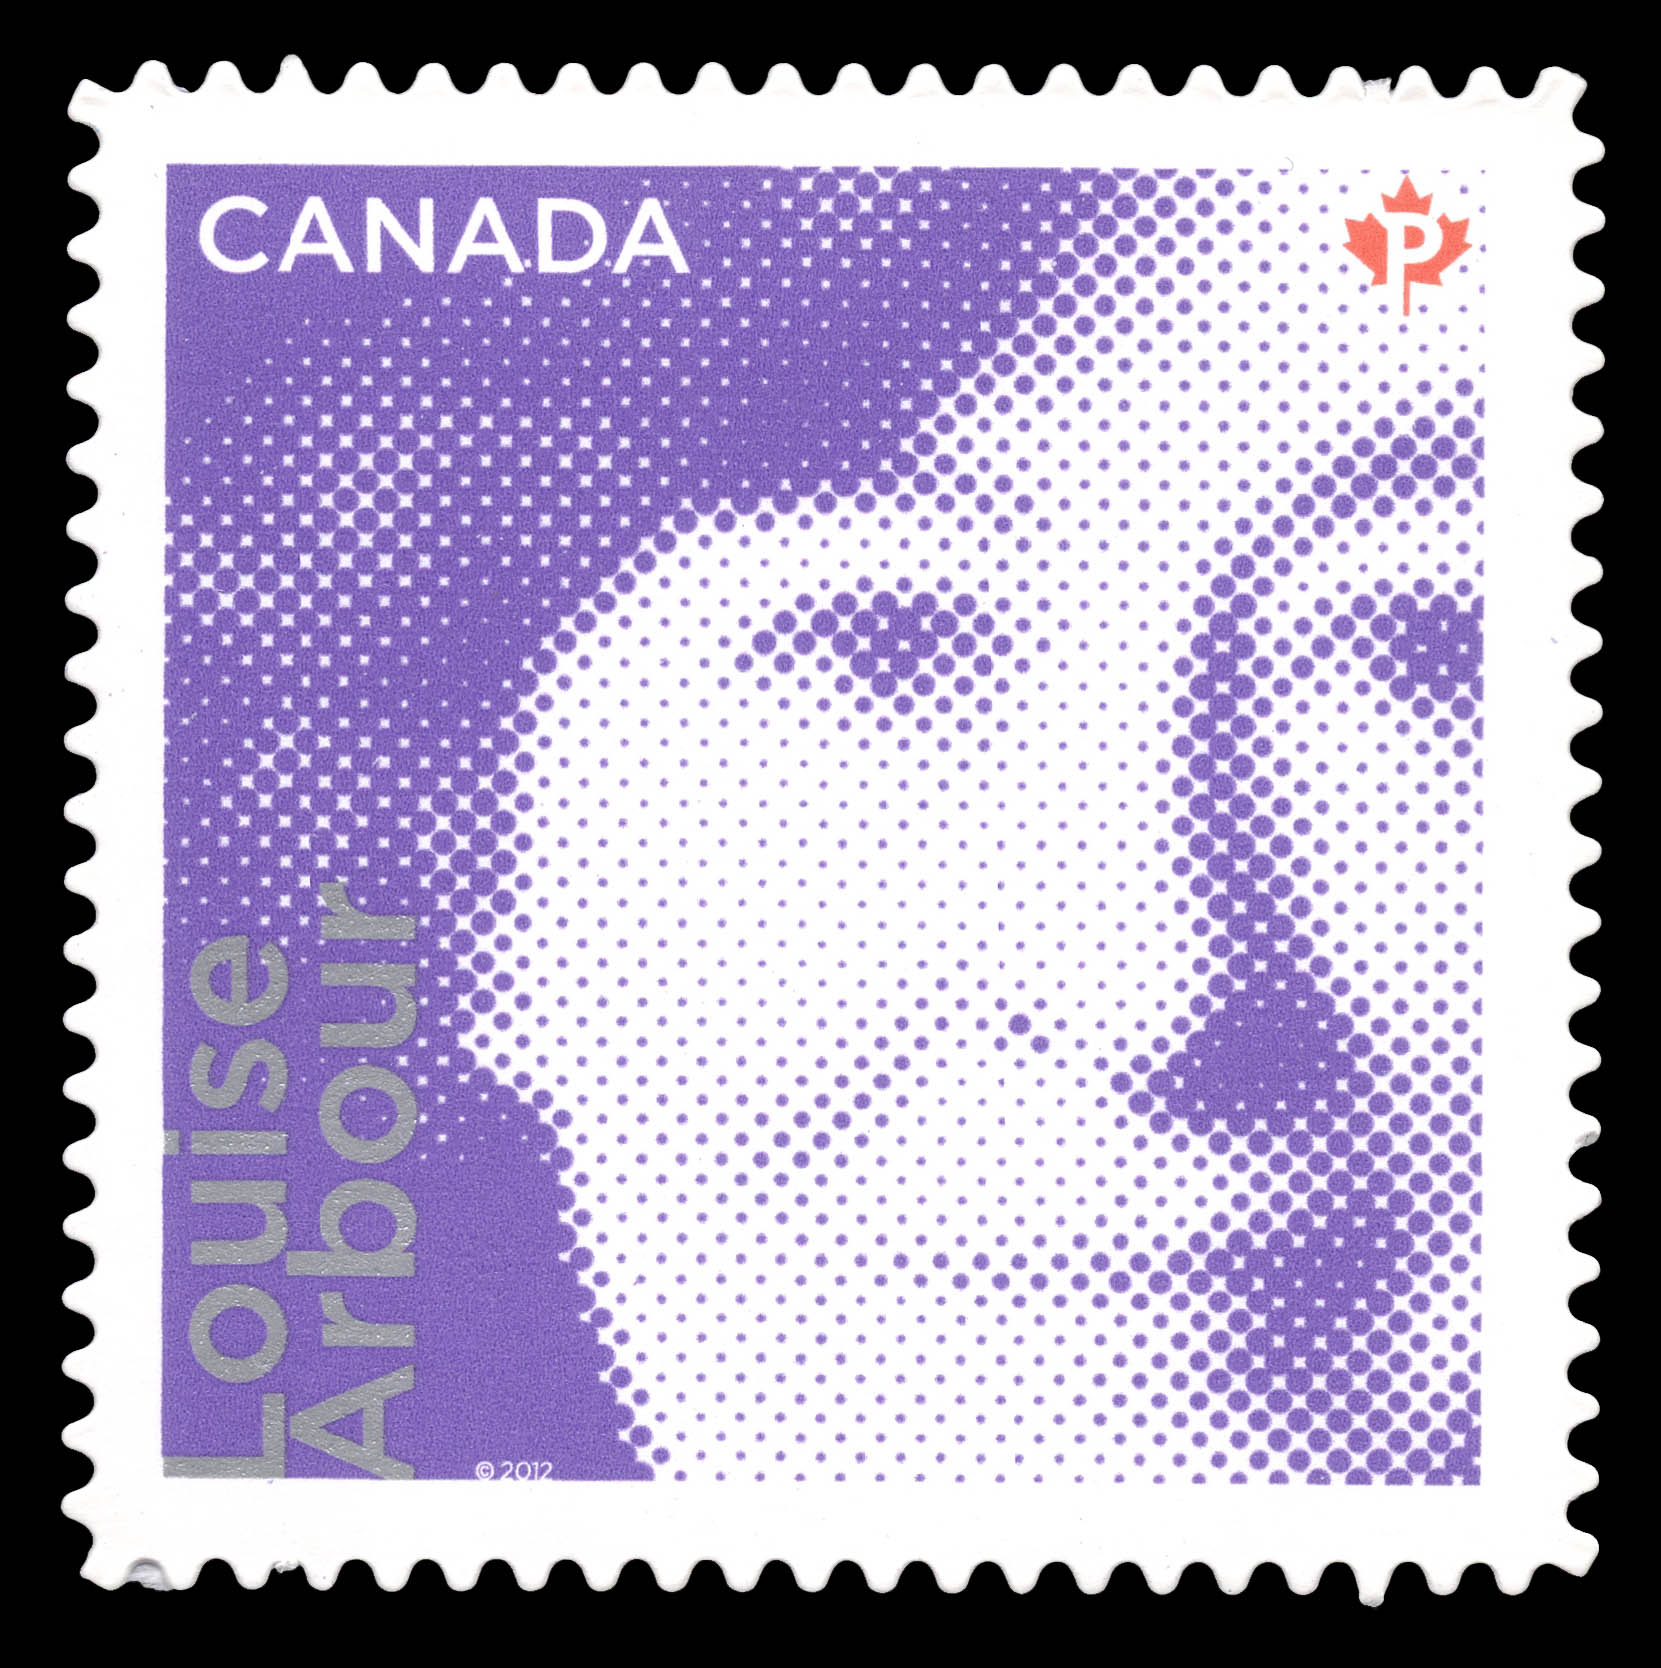 Louise Arbour Canada Postage Stamp | Difference Makers